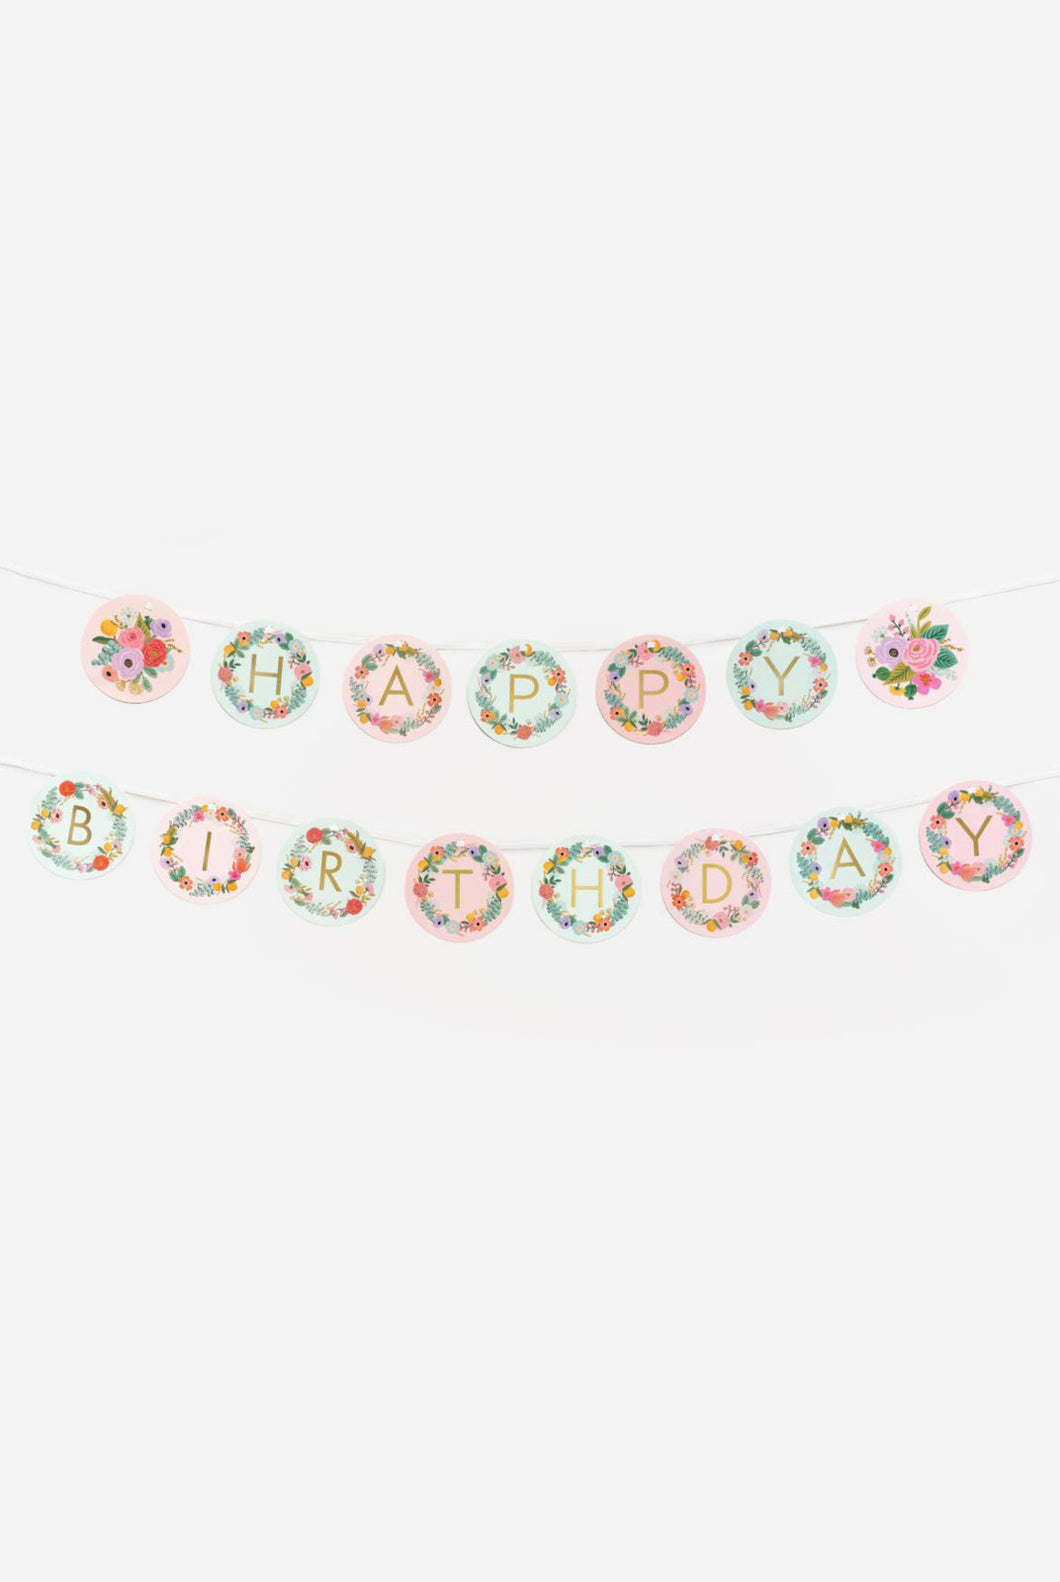 Rifle Paper Co - Paper Letter Garland - Garden Party